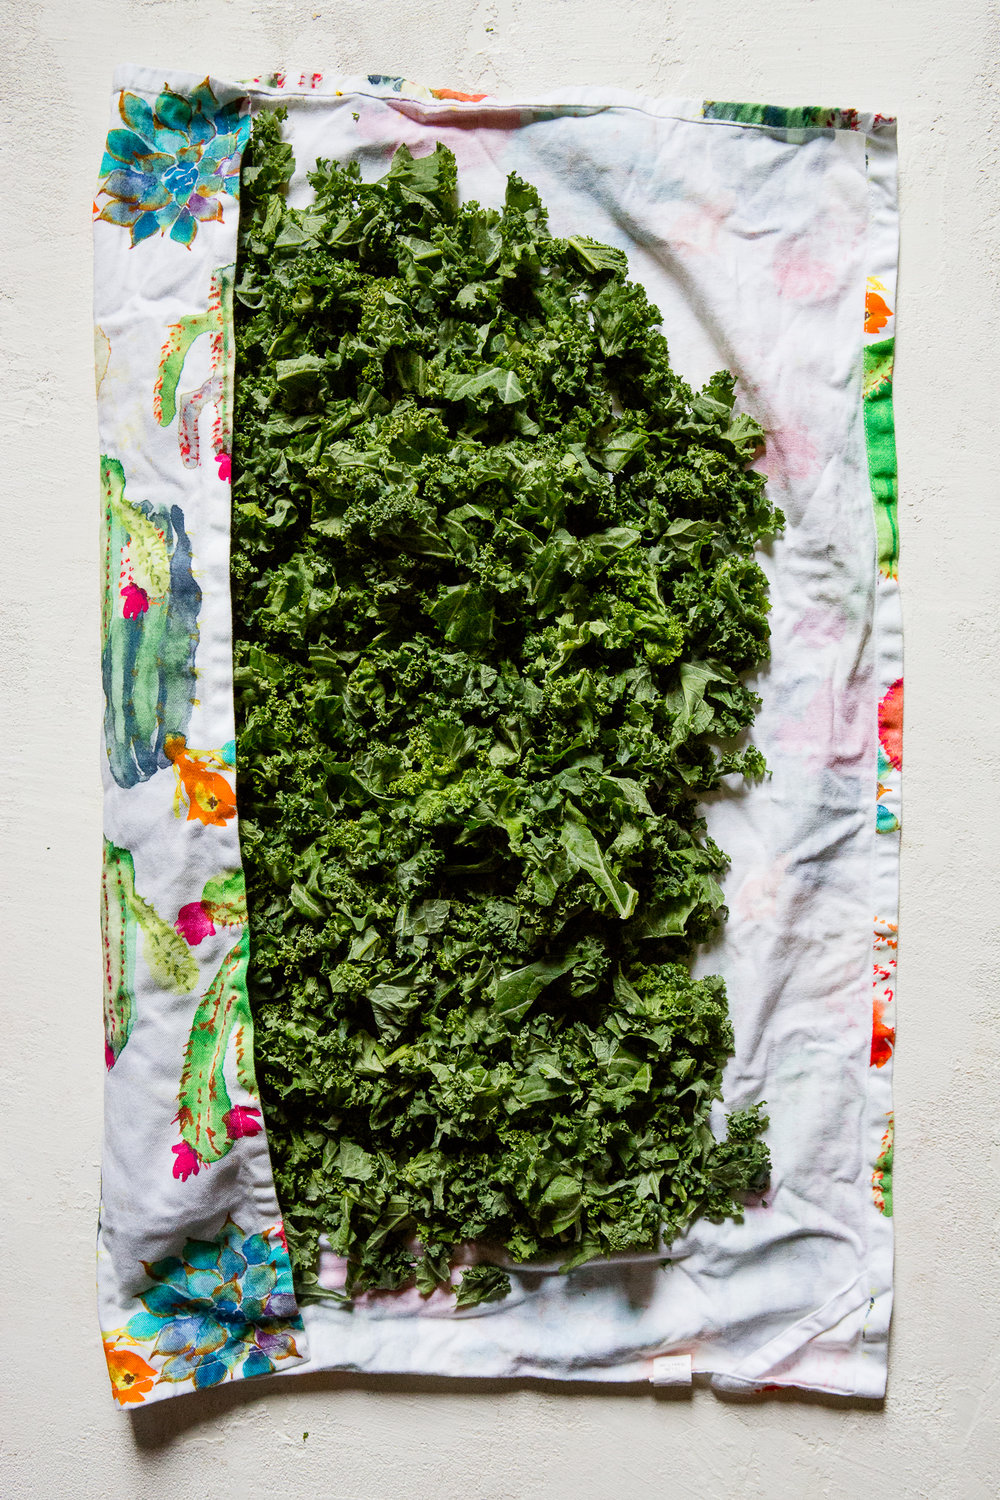 How to store fresh kale